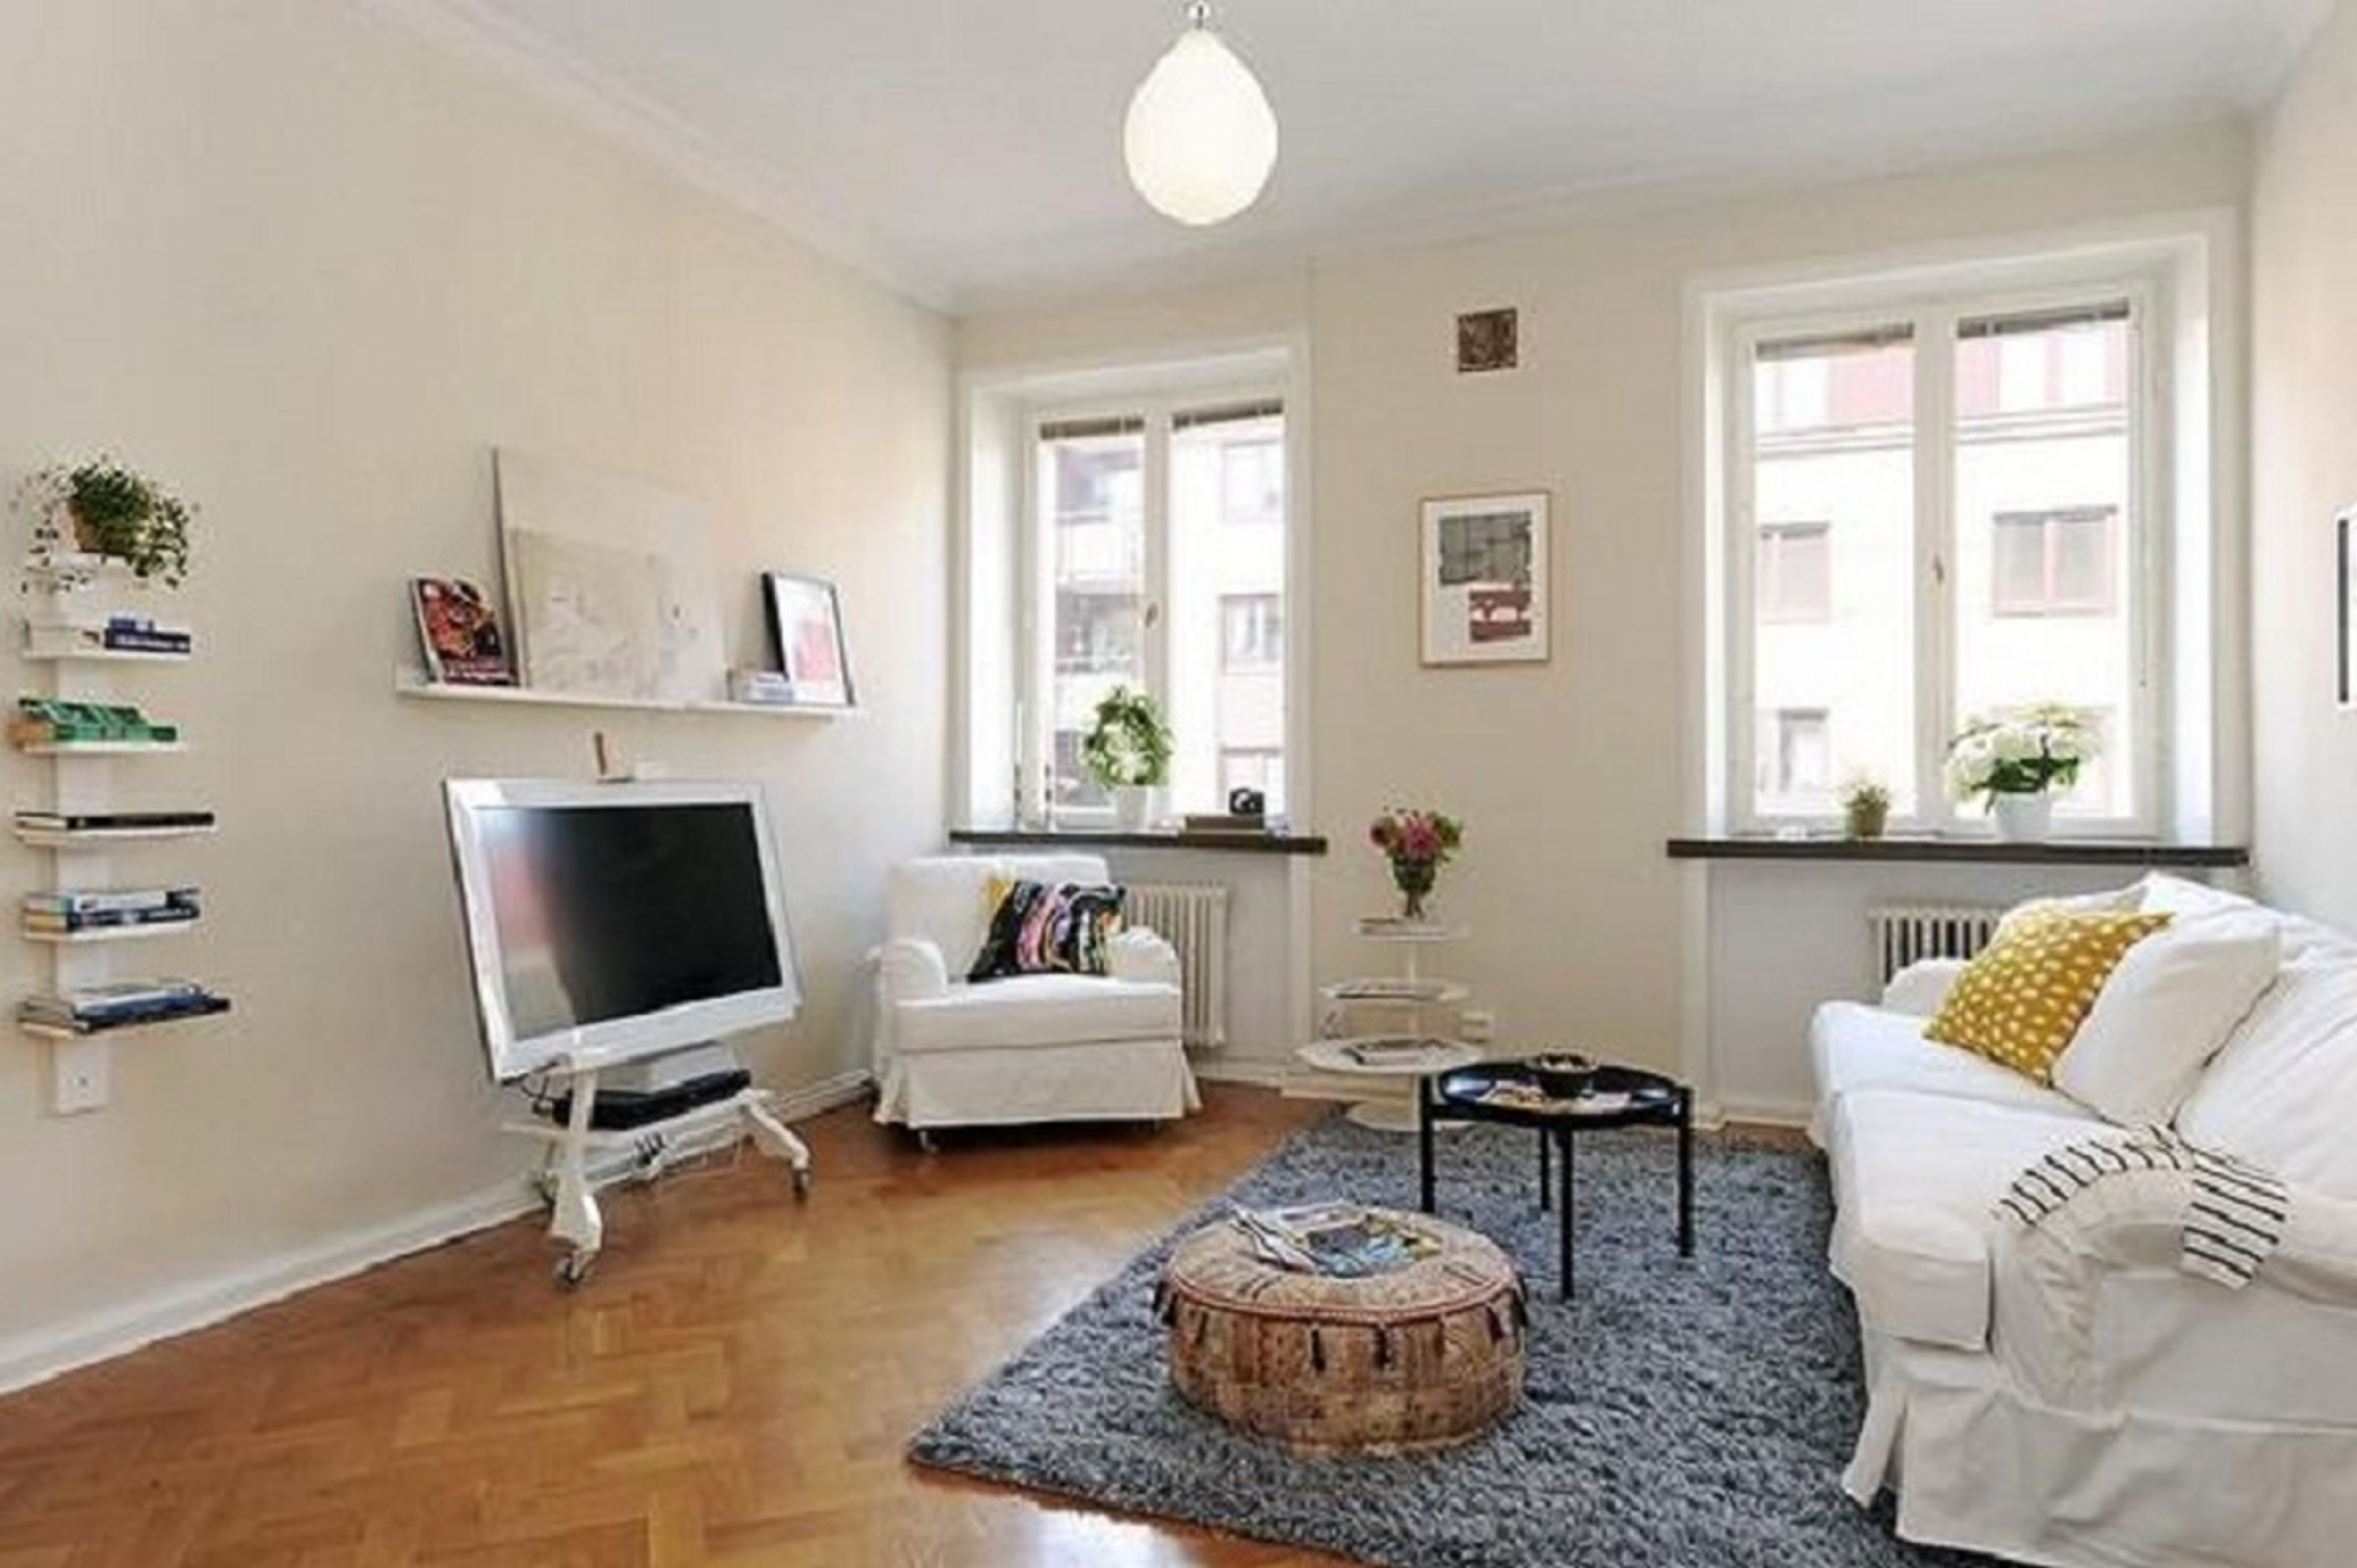 Apartment With Small Living Room Design  HomesFeed